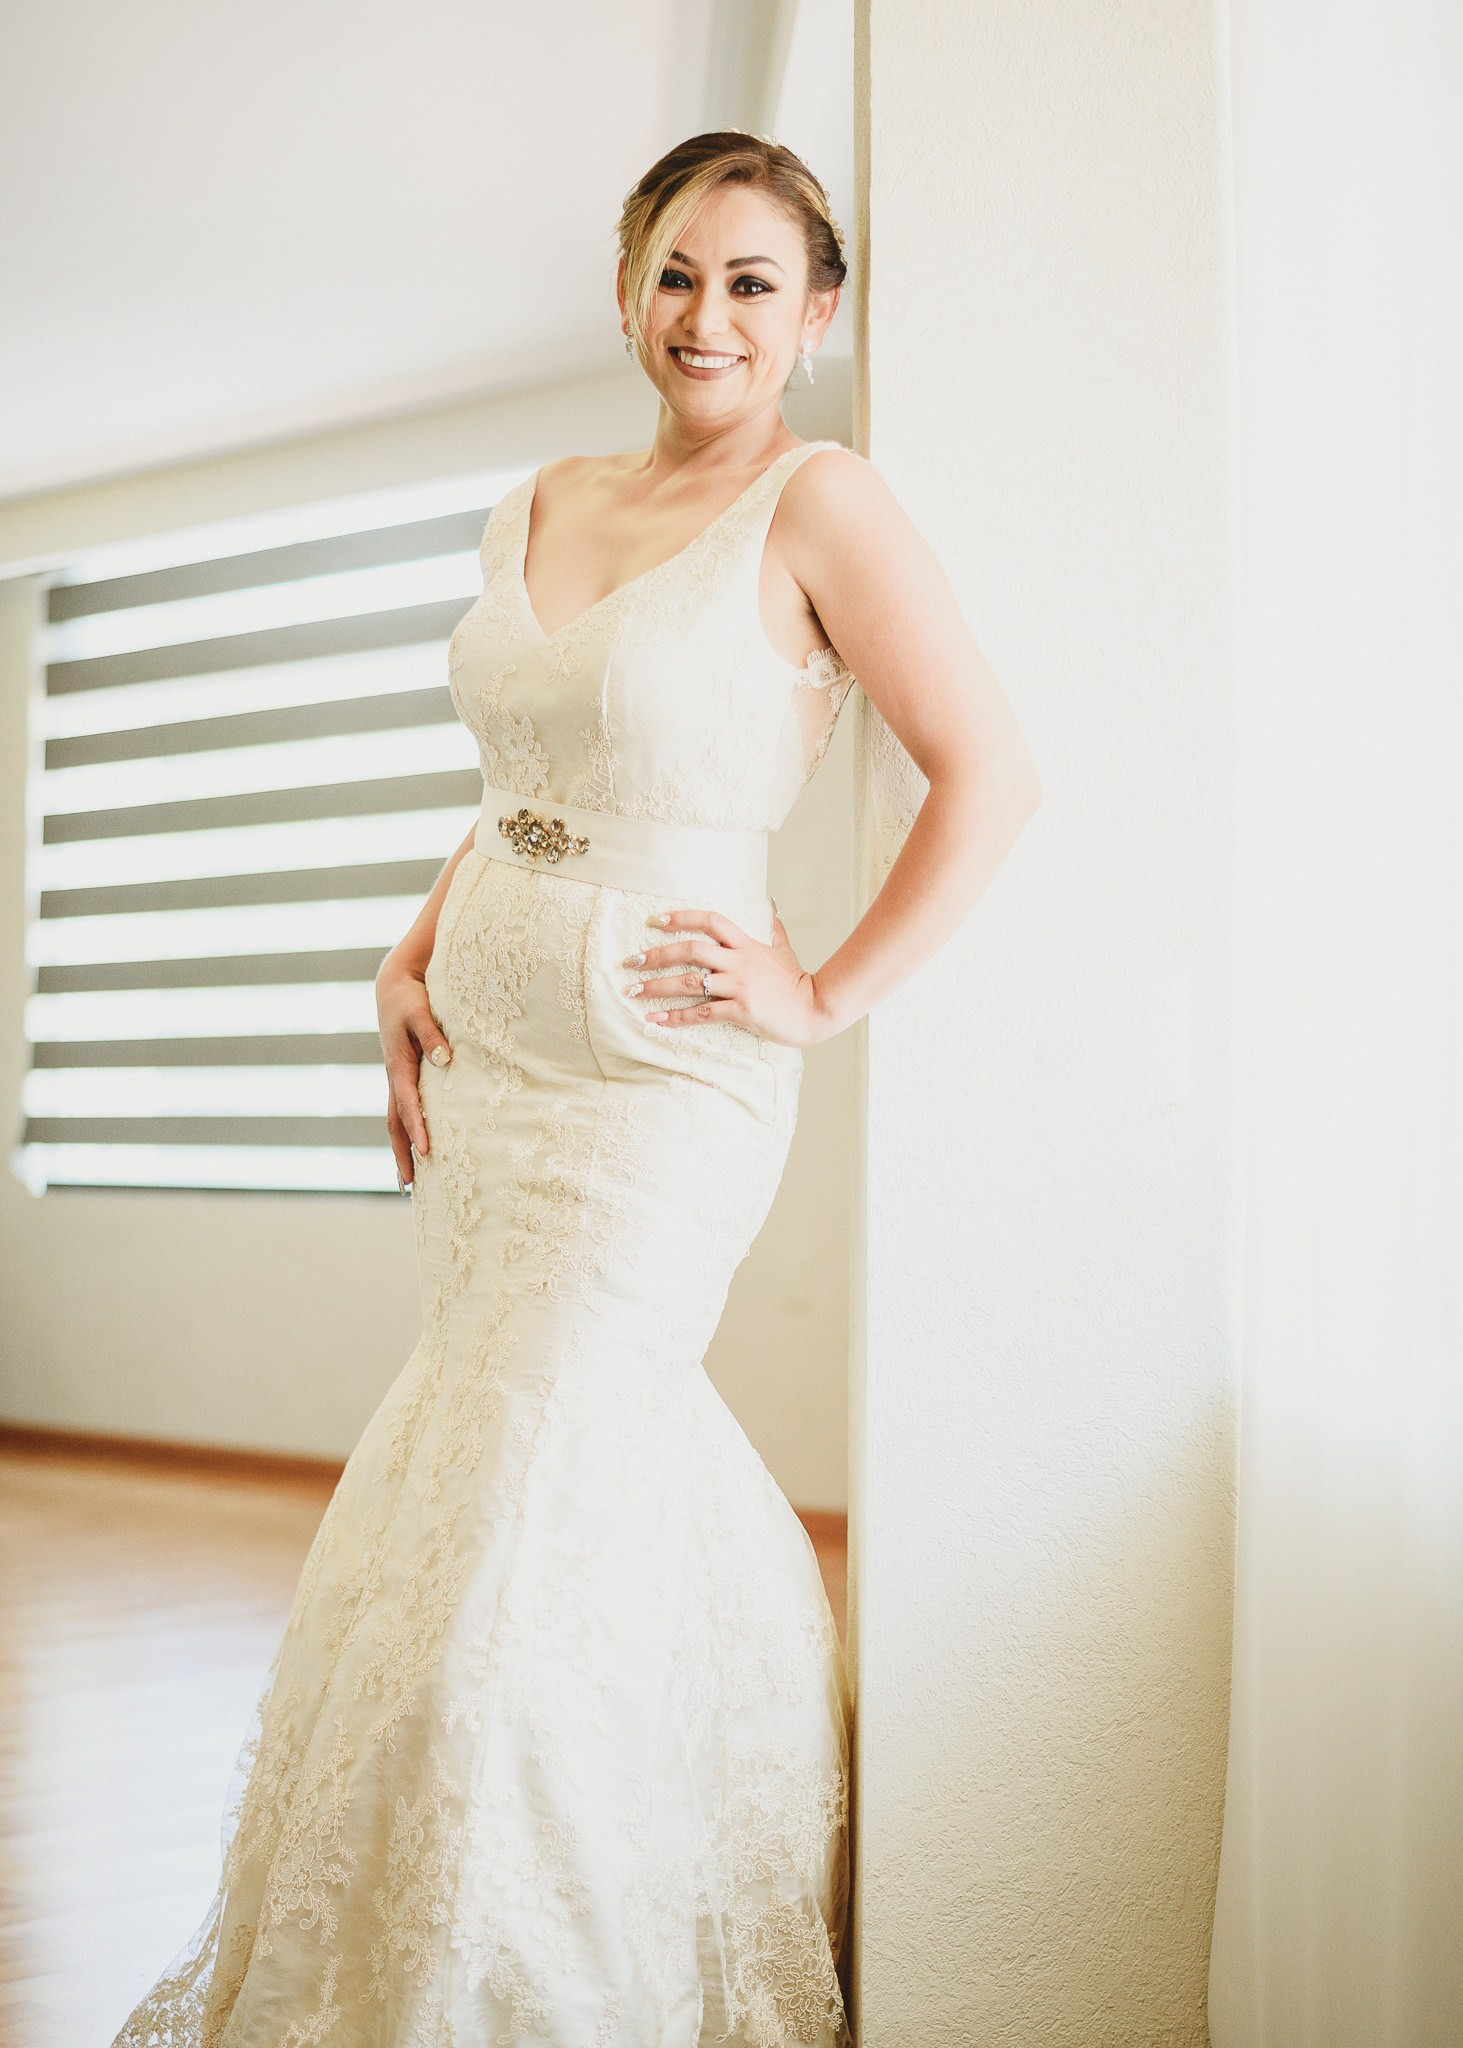 01getting-ready-wedding-hotel-las-trojes-boda-preparativos-fotografo-luis-houdin43